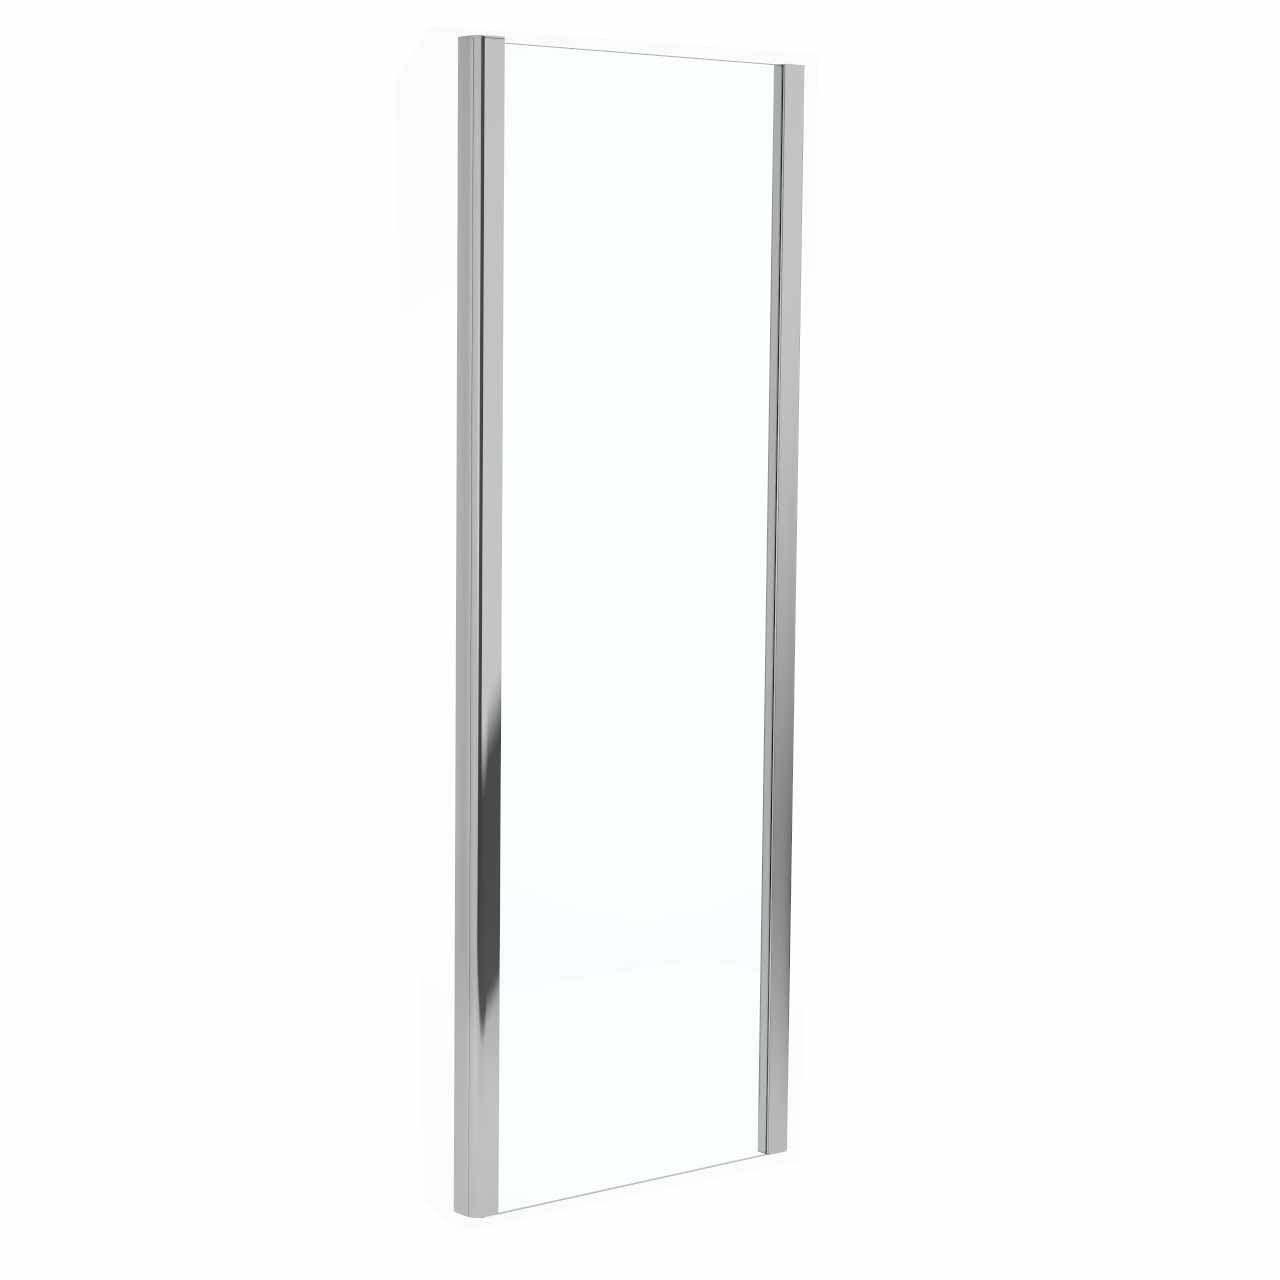 Series 8 Plus 900mm x 700mm Hinged Door Shower Enclosure